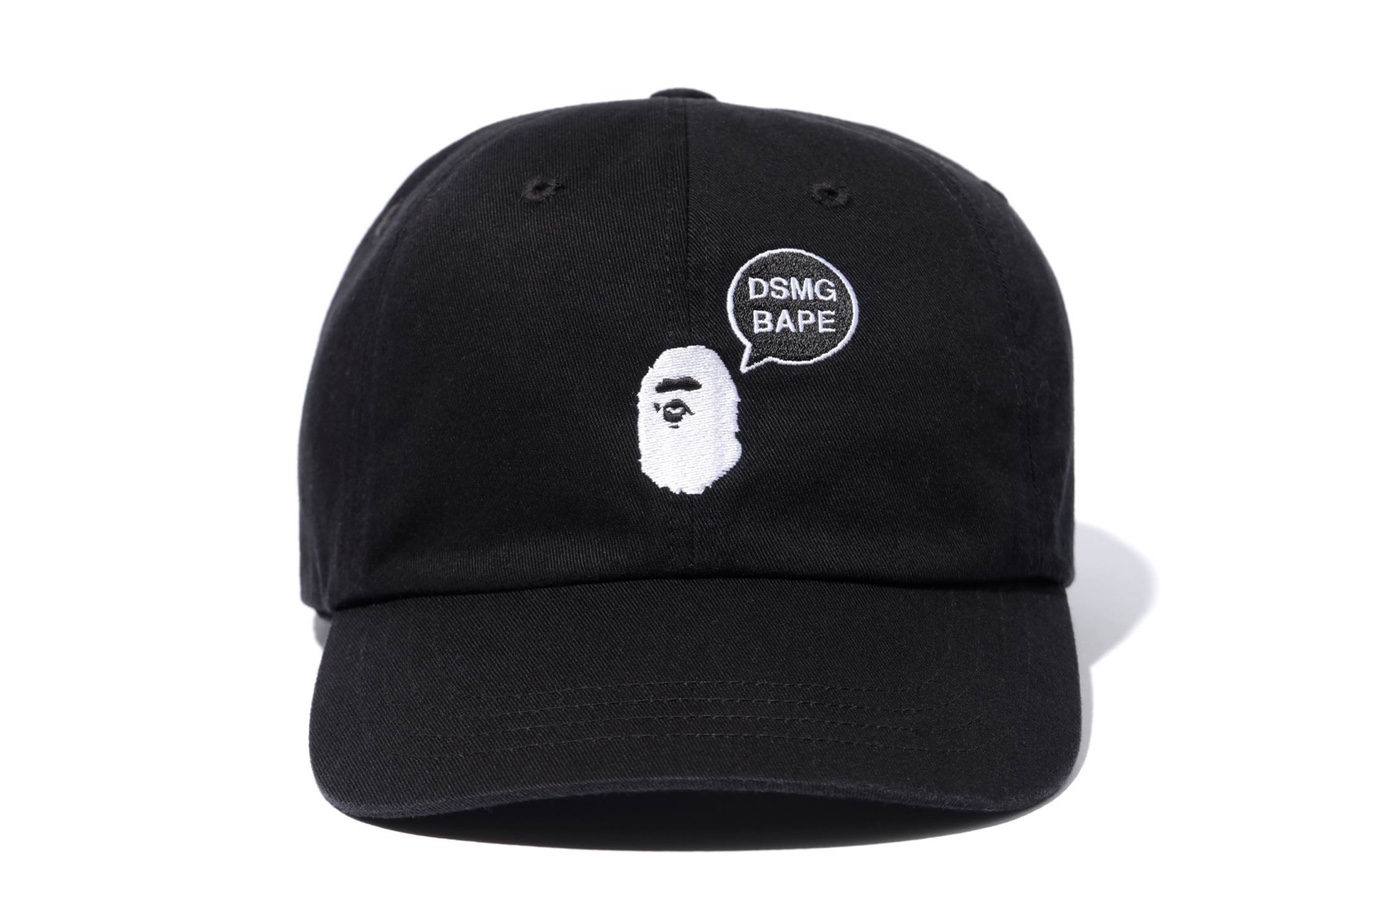 http---hypebeast.com-image-2017-04-bape-dad-hat-dover-street-market-ginza-3